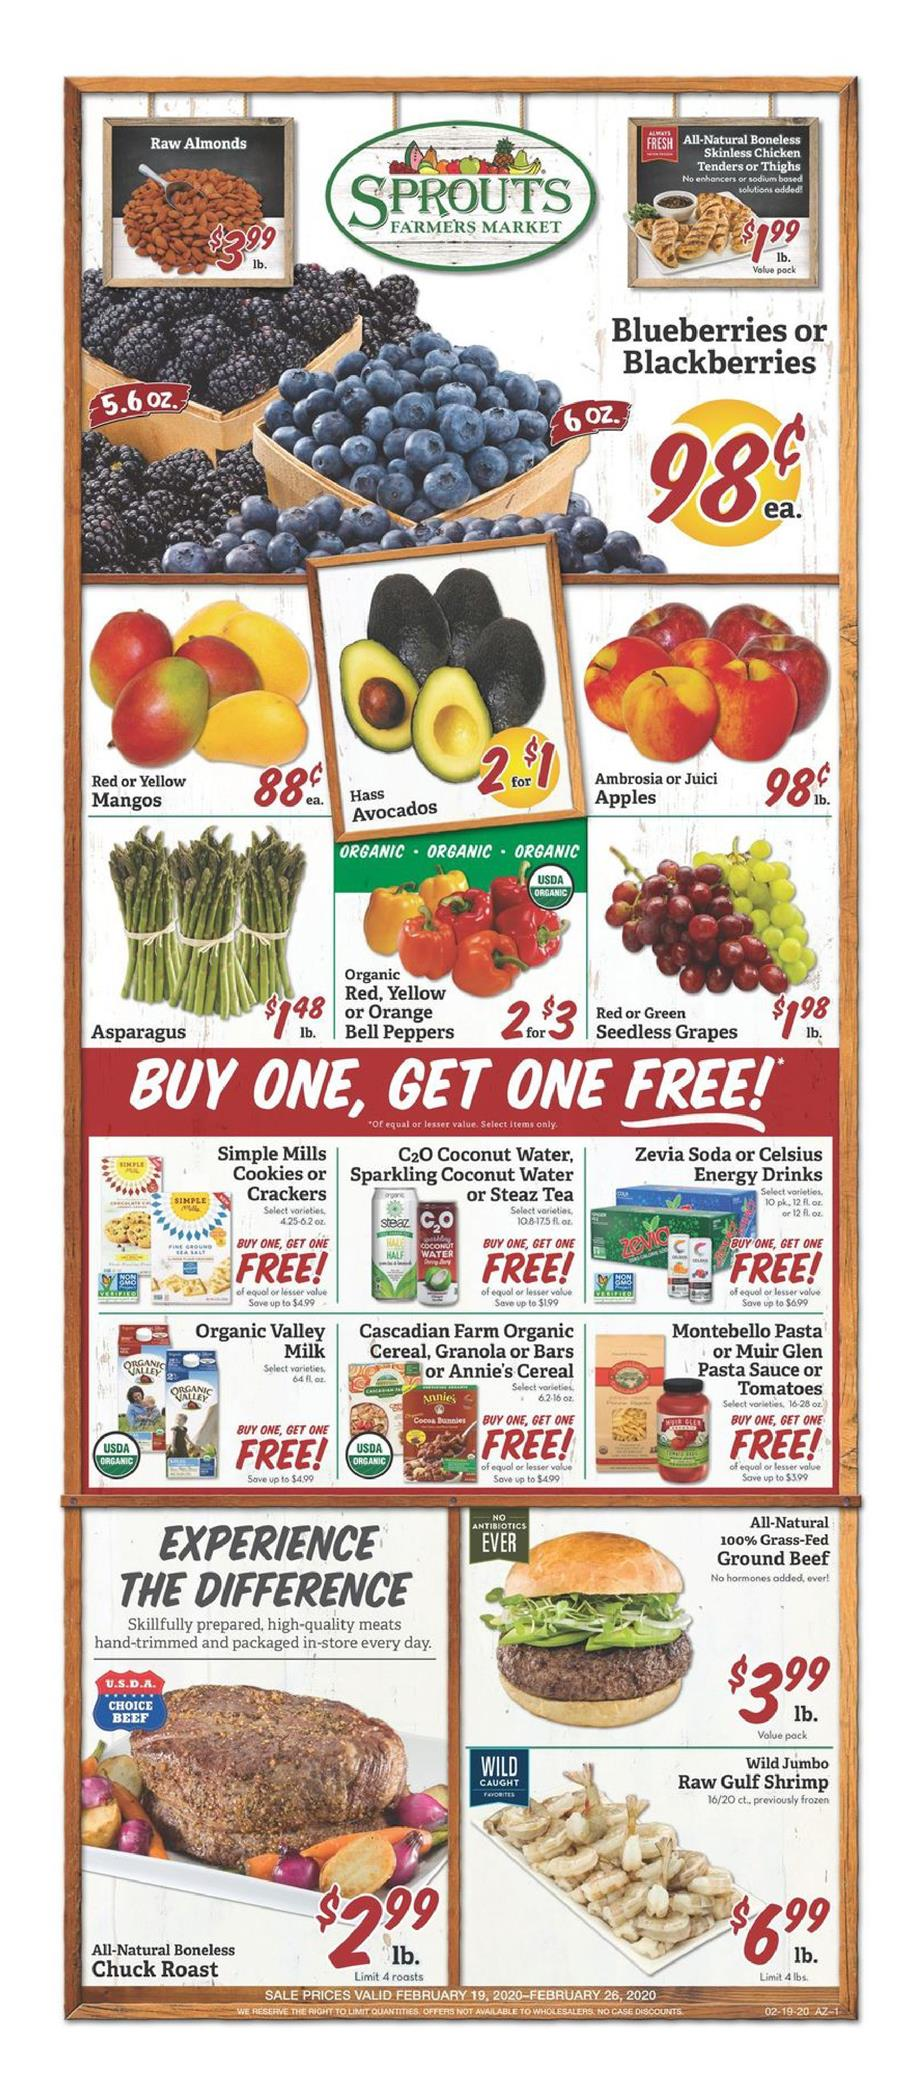 Sprouts Final February Ad valid from Feb 19 – 25, 2020.